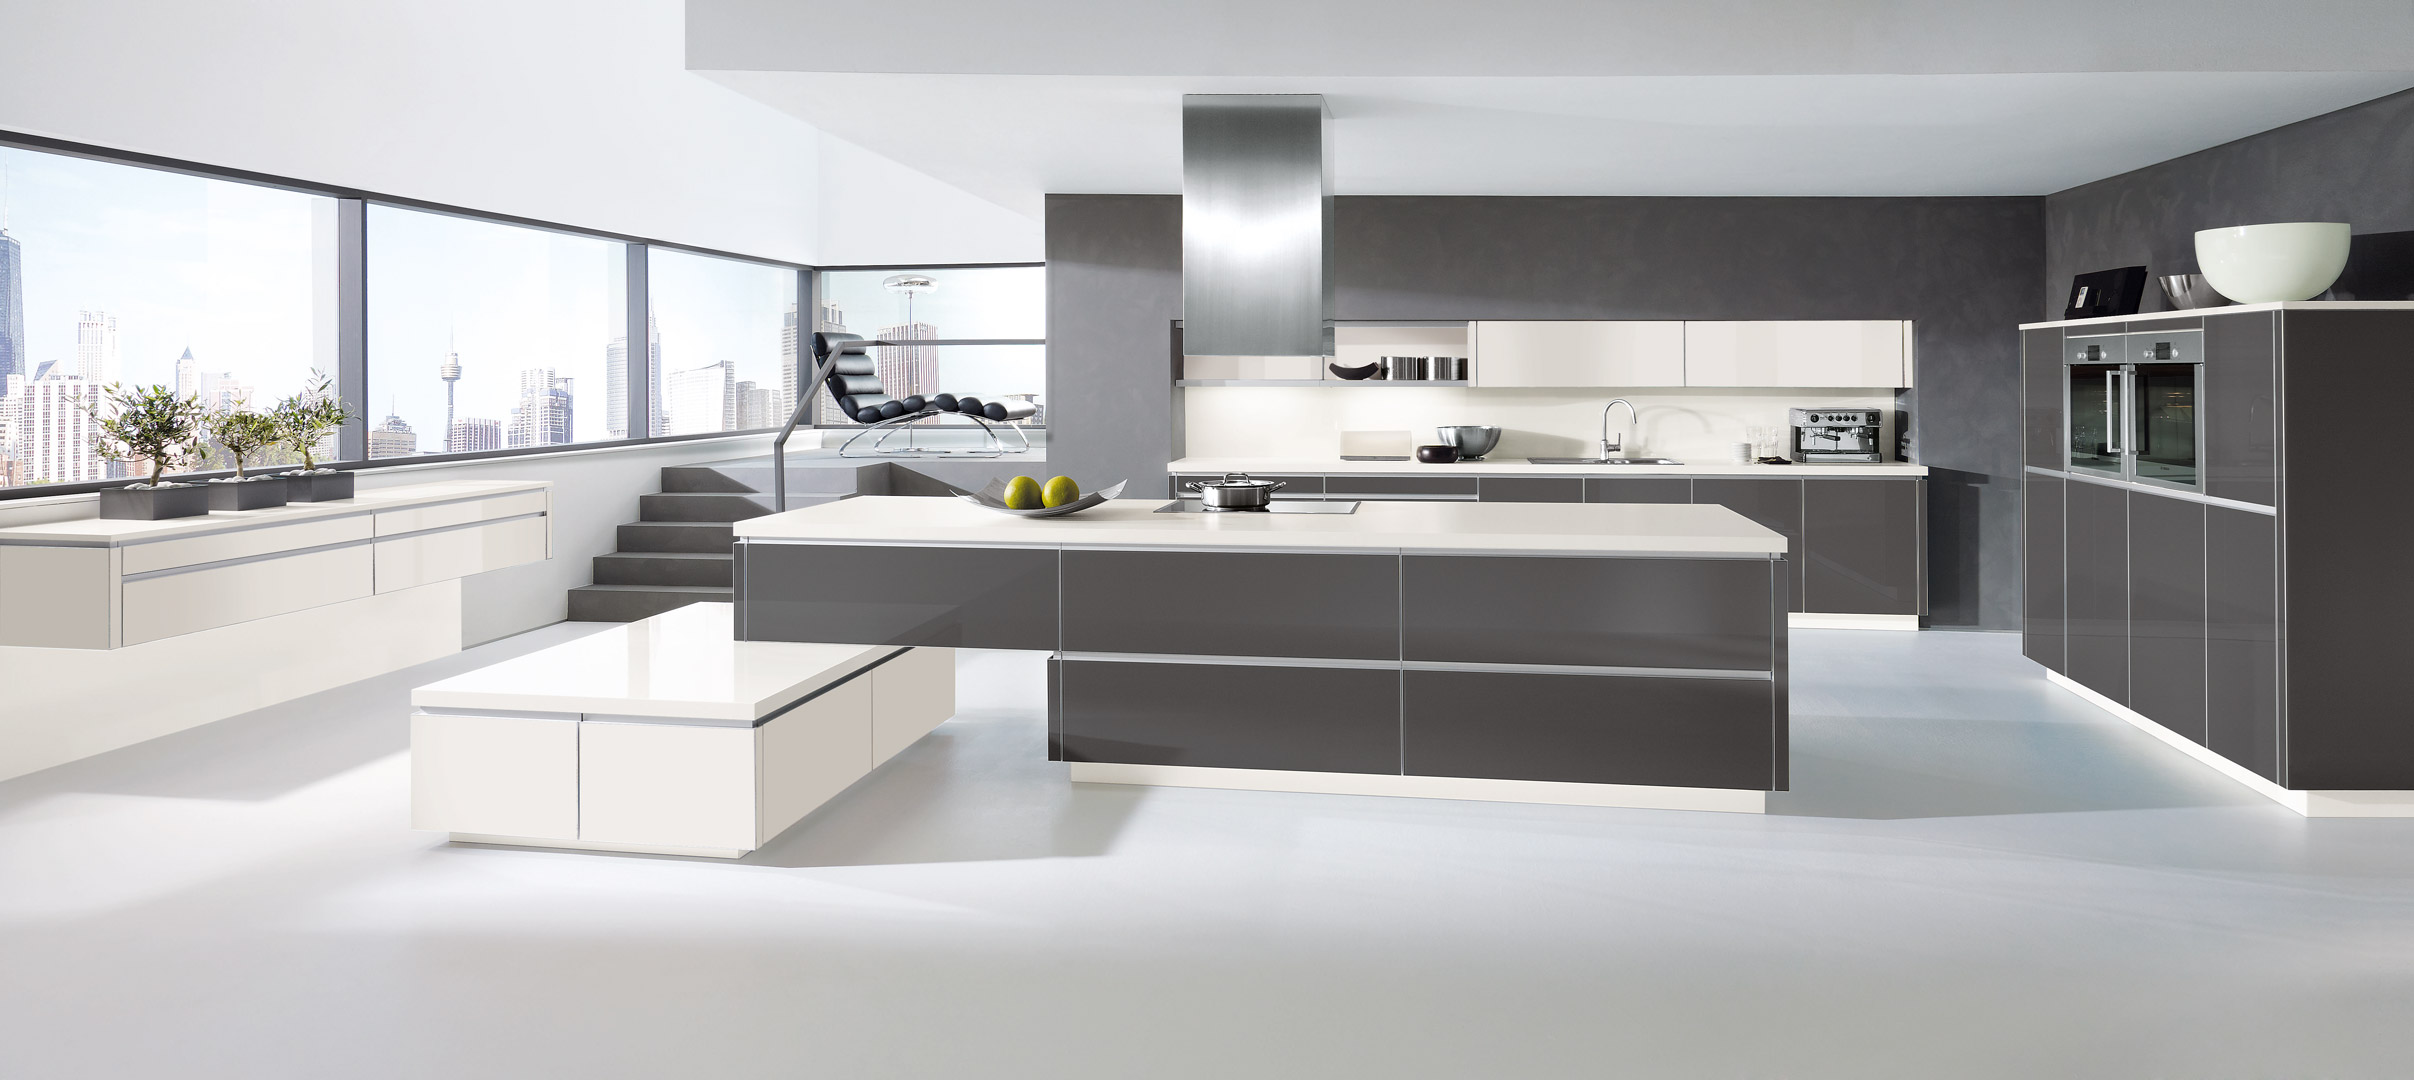 Magnolia Farbe Alno Küche Fitted Kitchens By Alno Sussex Surrey London